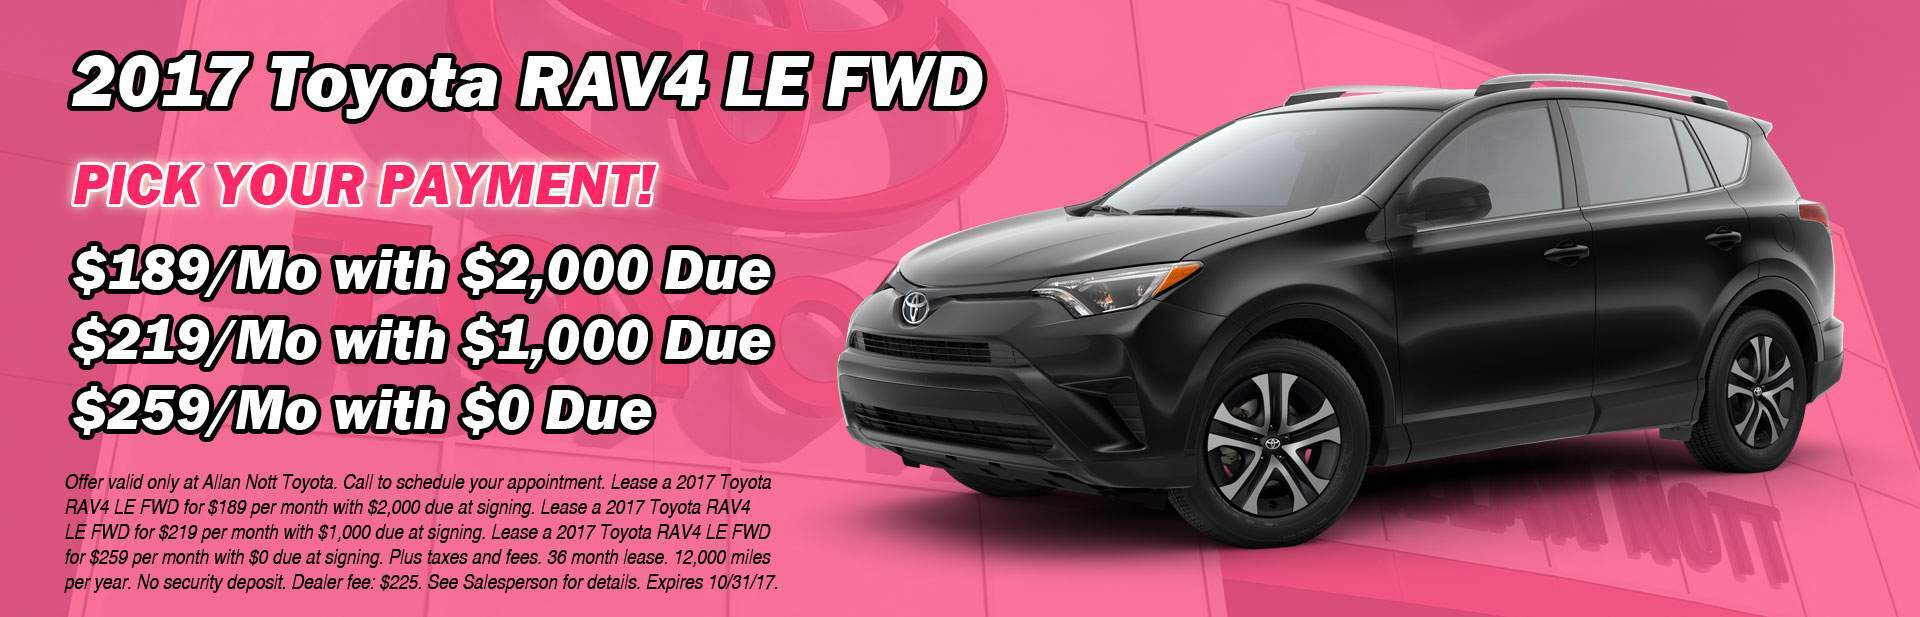 PICK YOUR PAYMENT! Lease a 2017 Toyota RAV4 LE FWD from Allan Nott today!